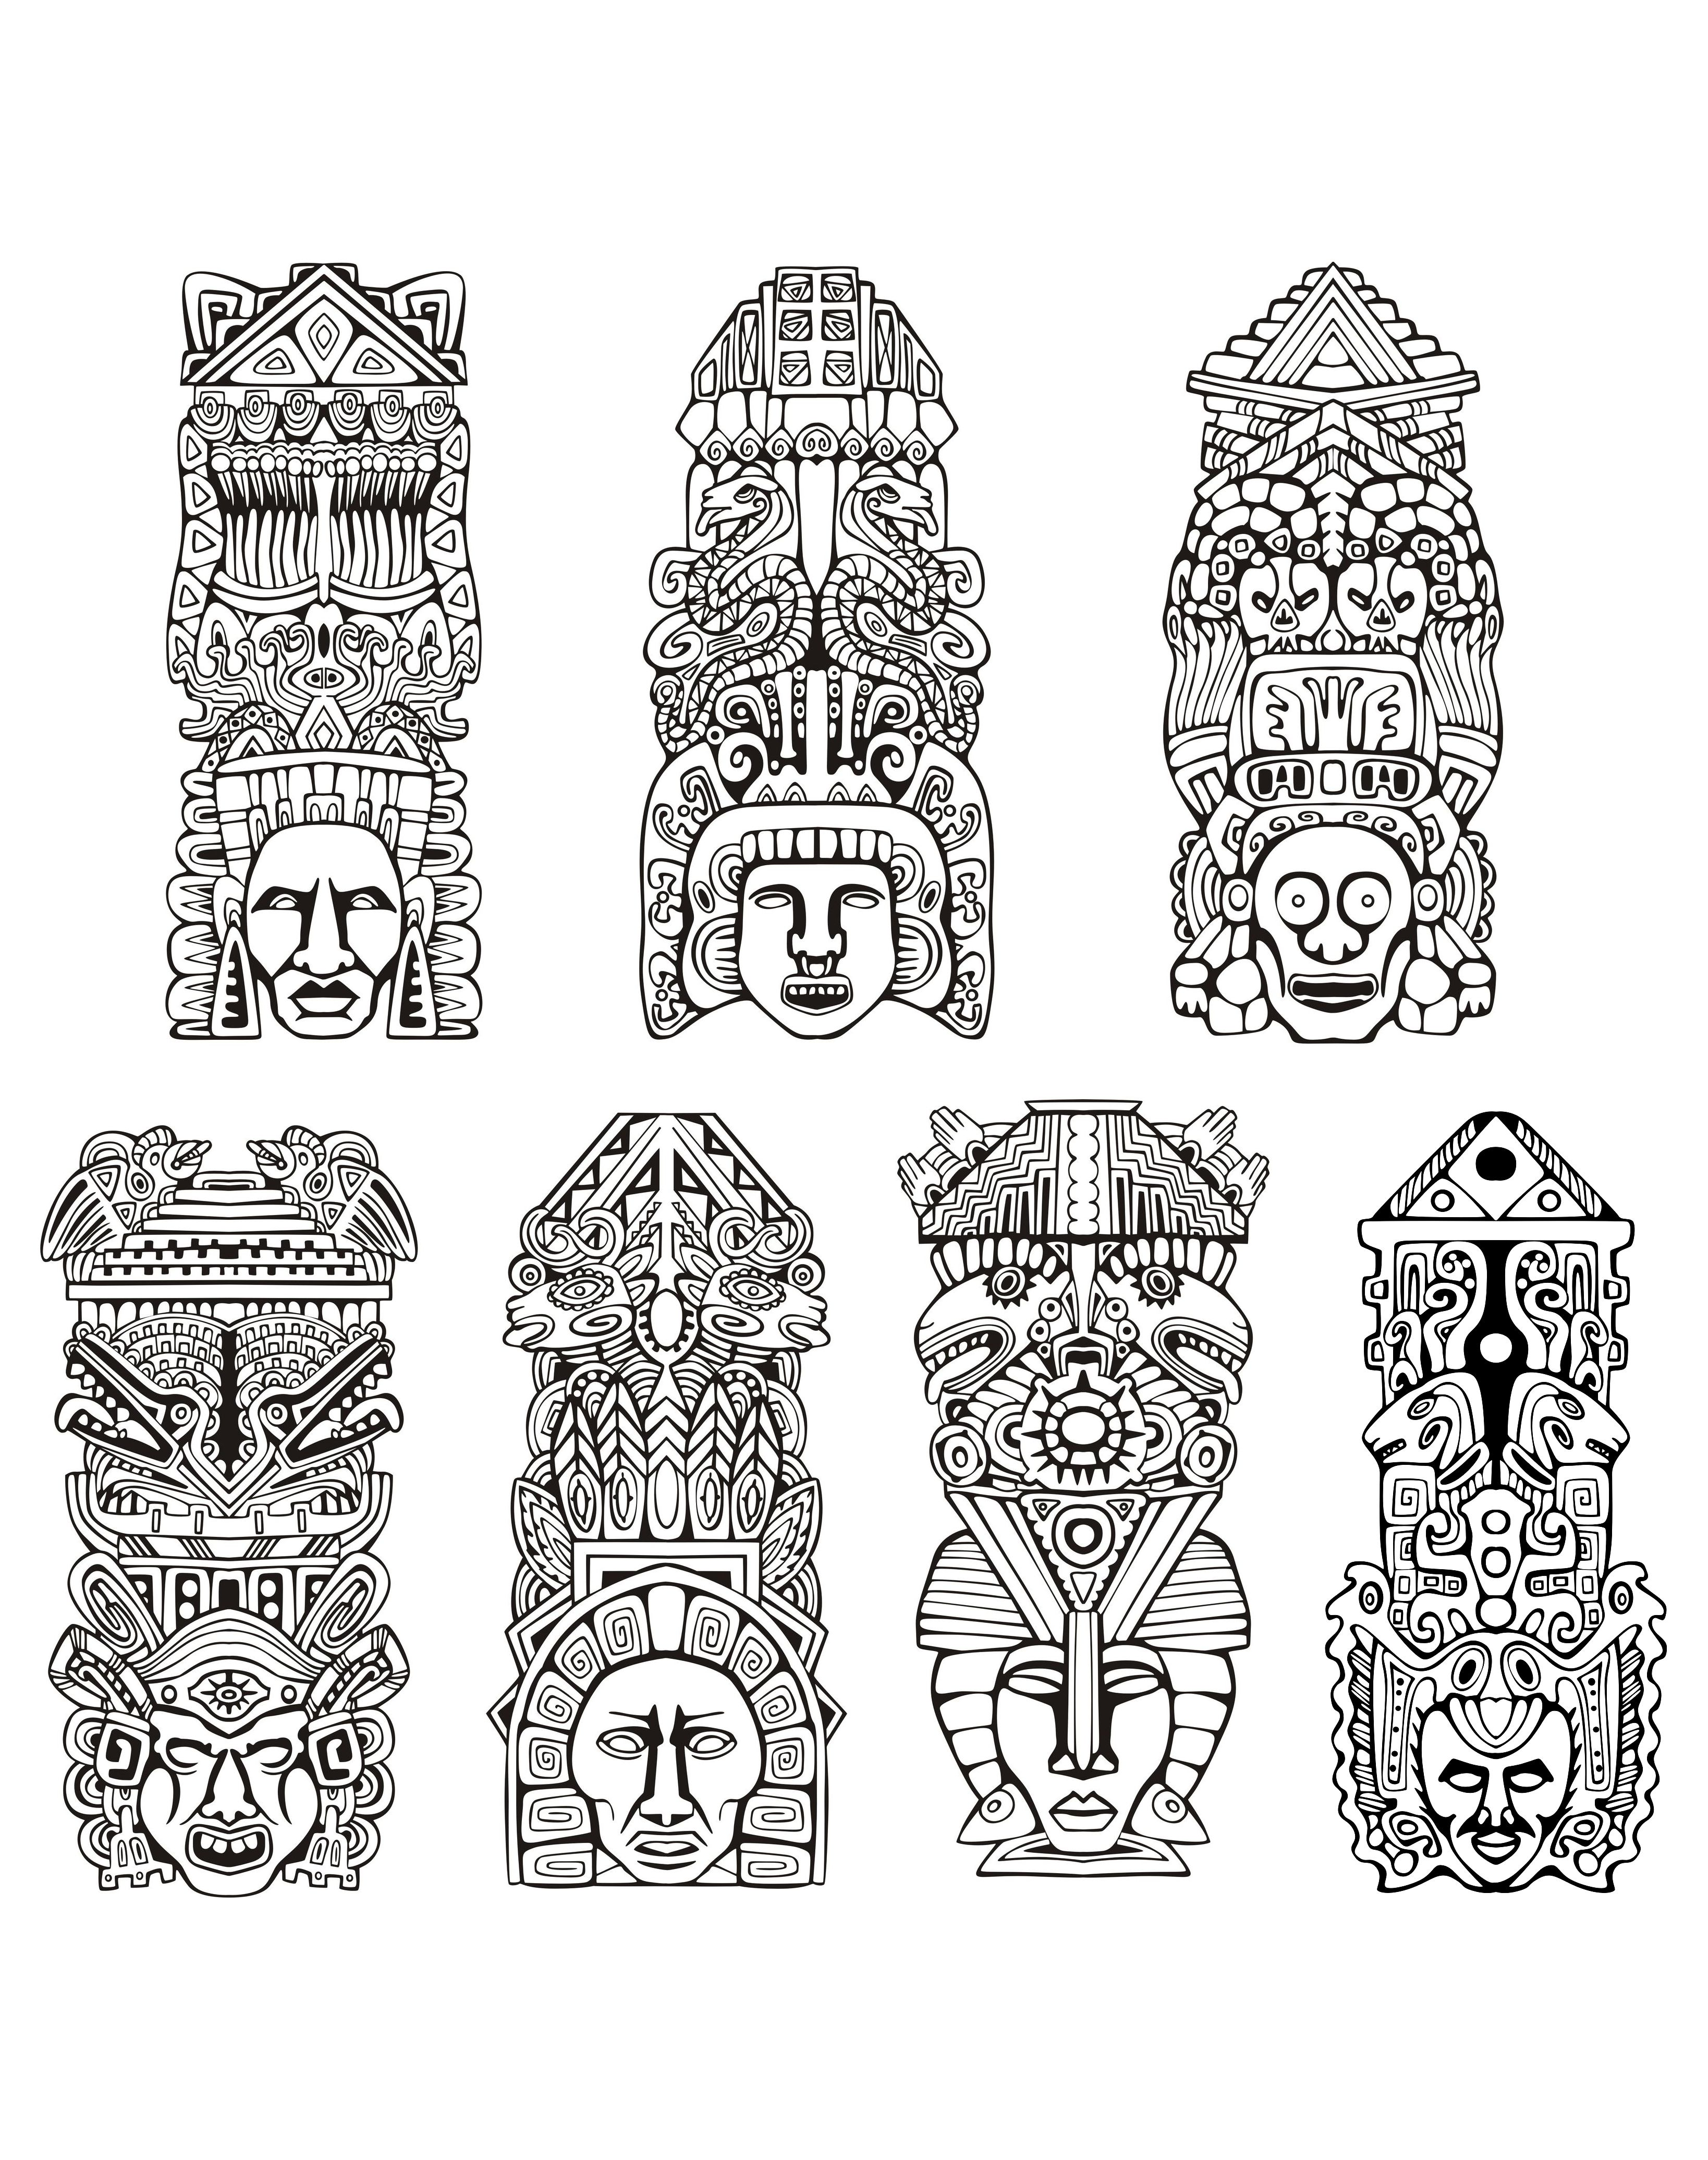 Masks coloring page with few details for kids